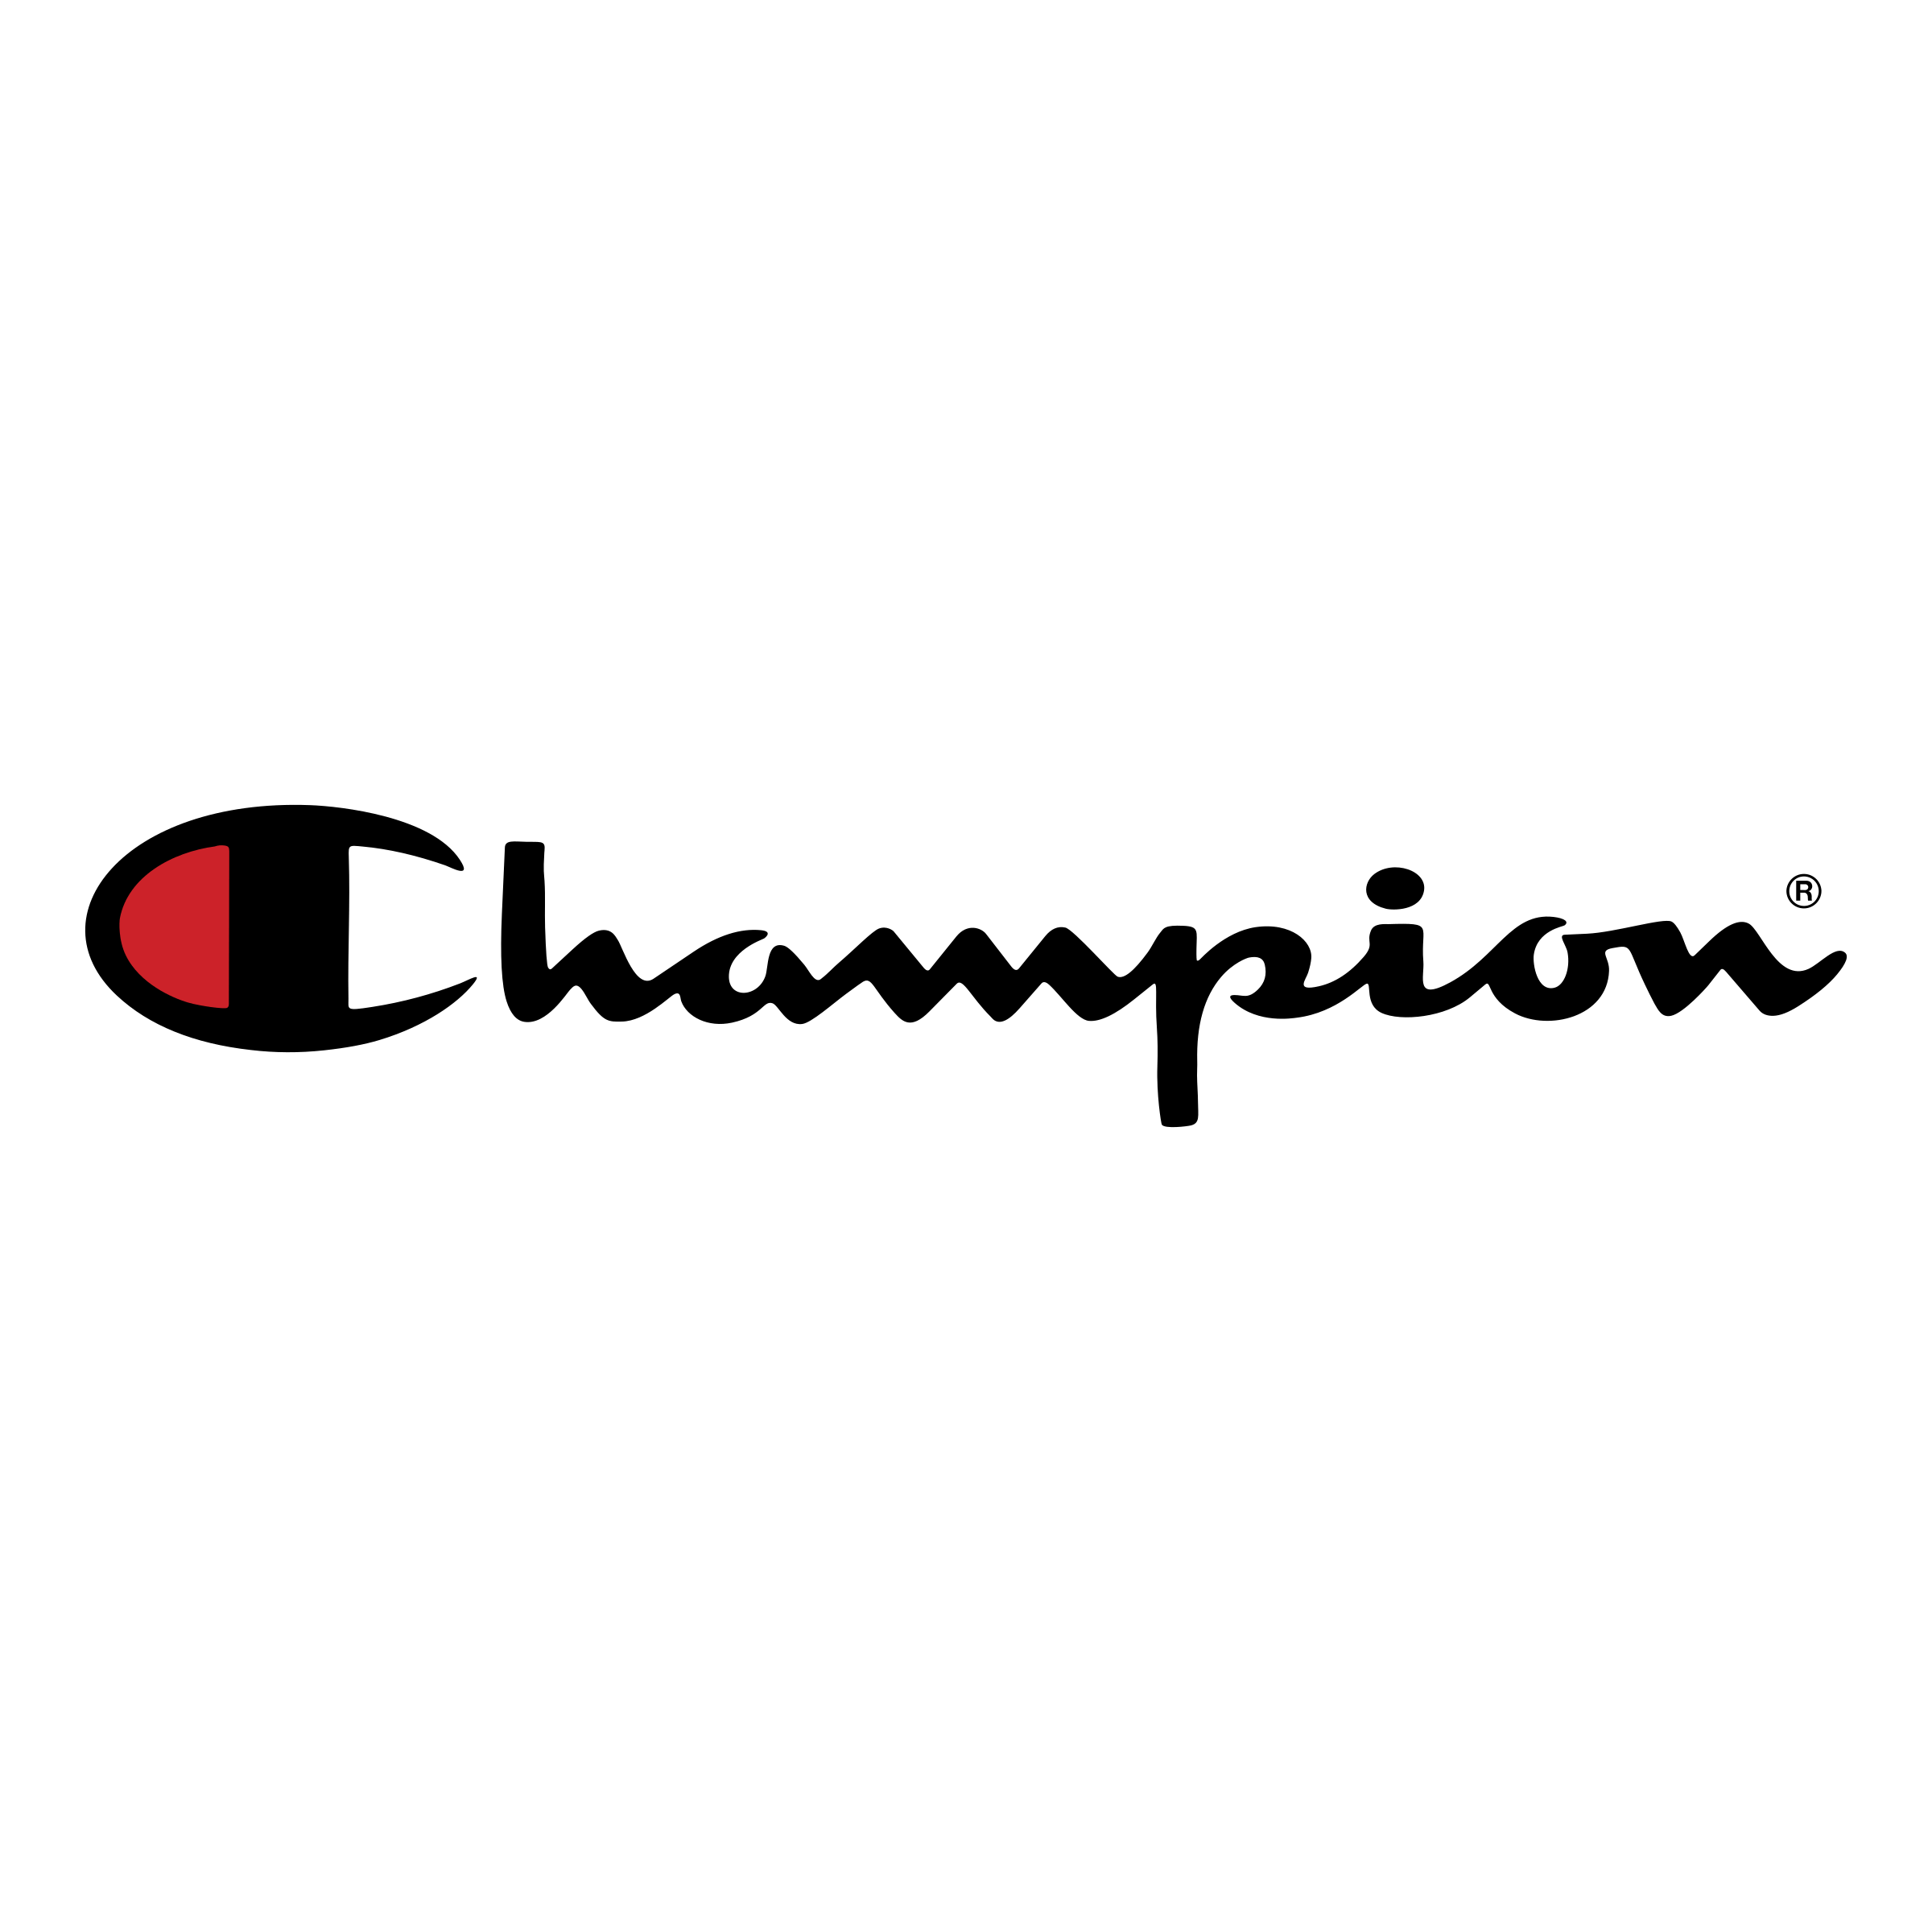 Champion Logo - Champion Logo PNG Transparent & SVG Vector - Freebie Supply